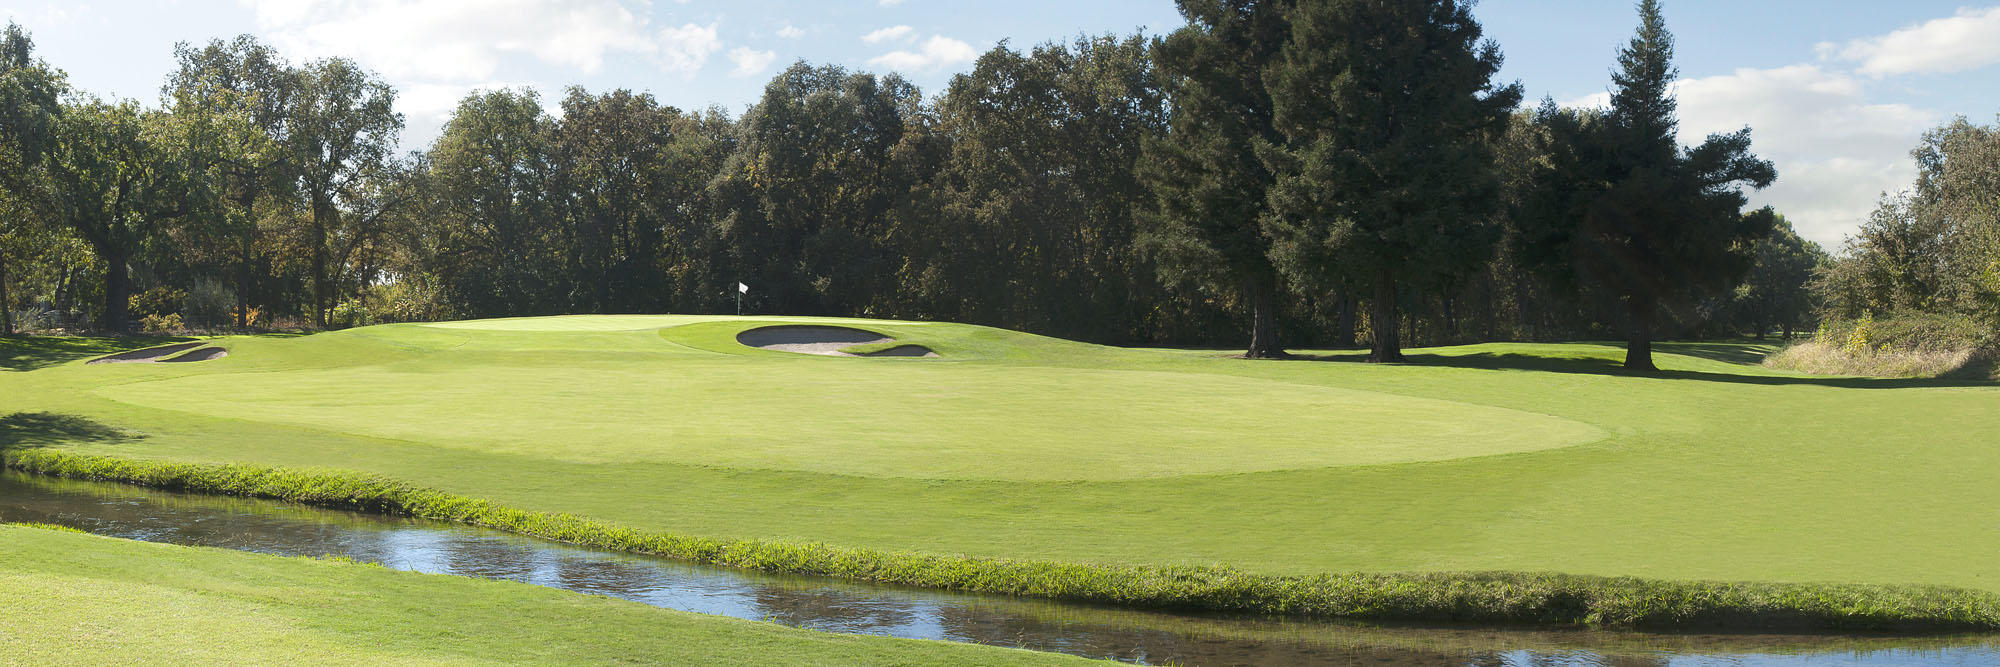 Golf Course Image - Butte Creek Country Club No. 4